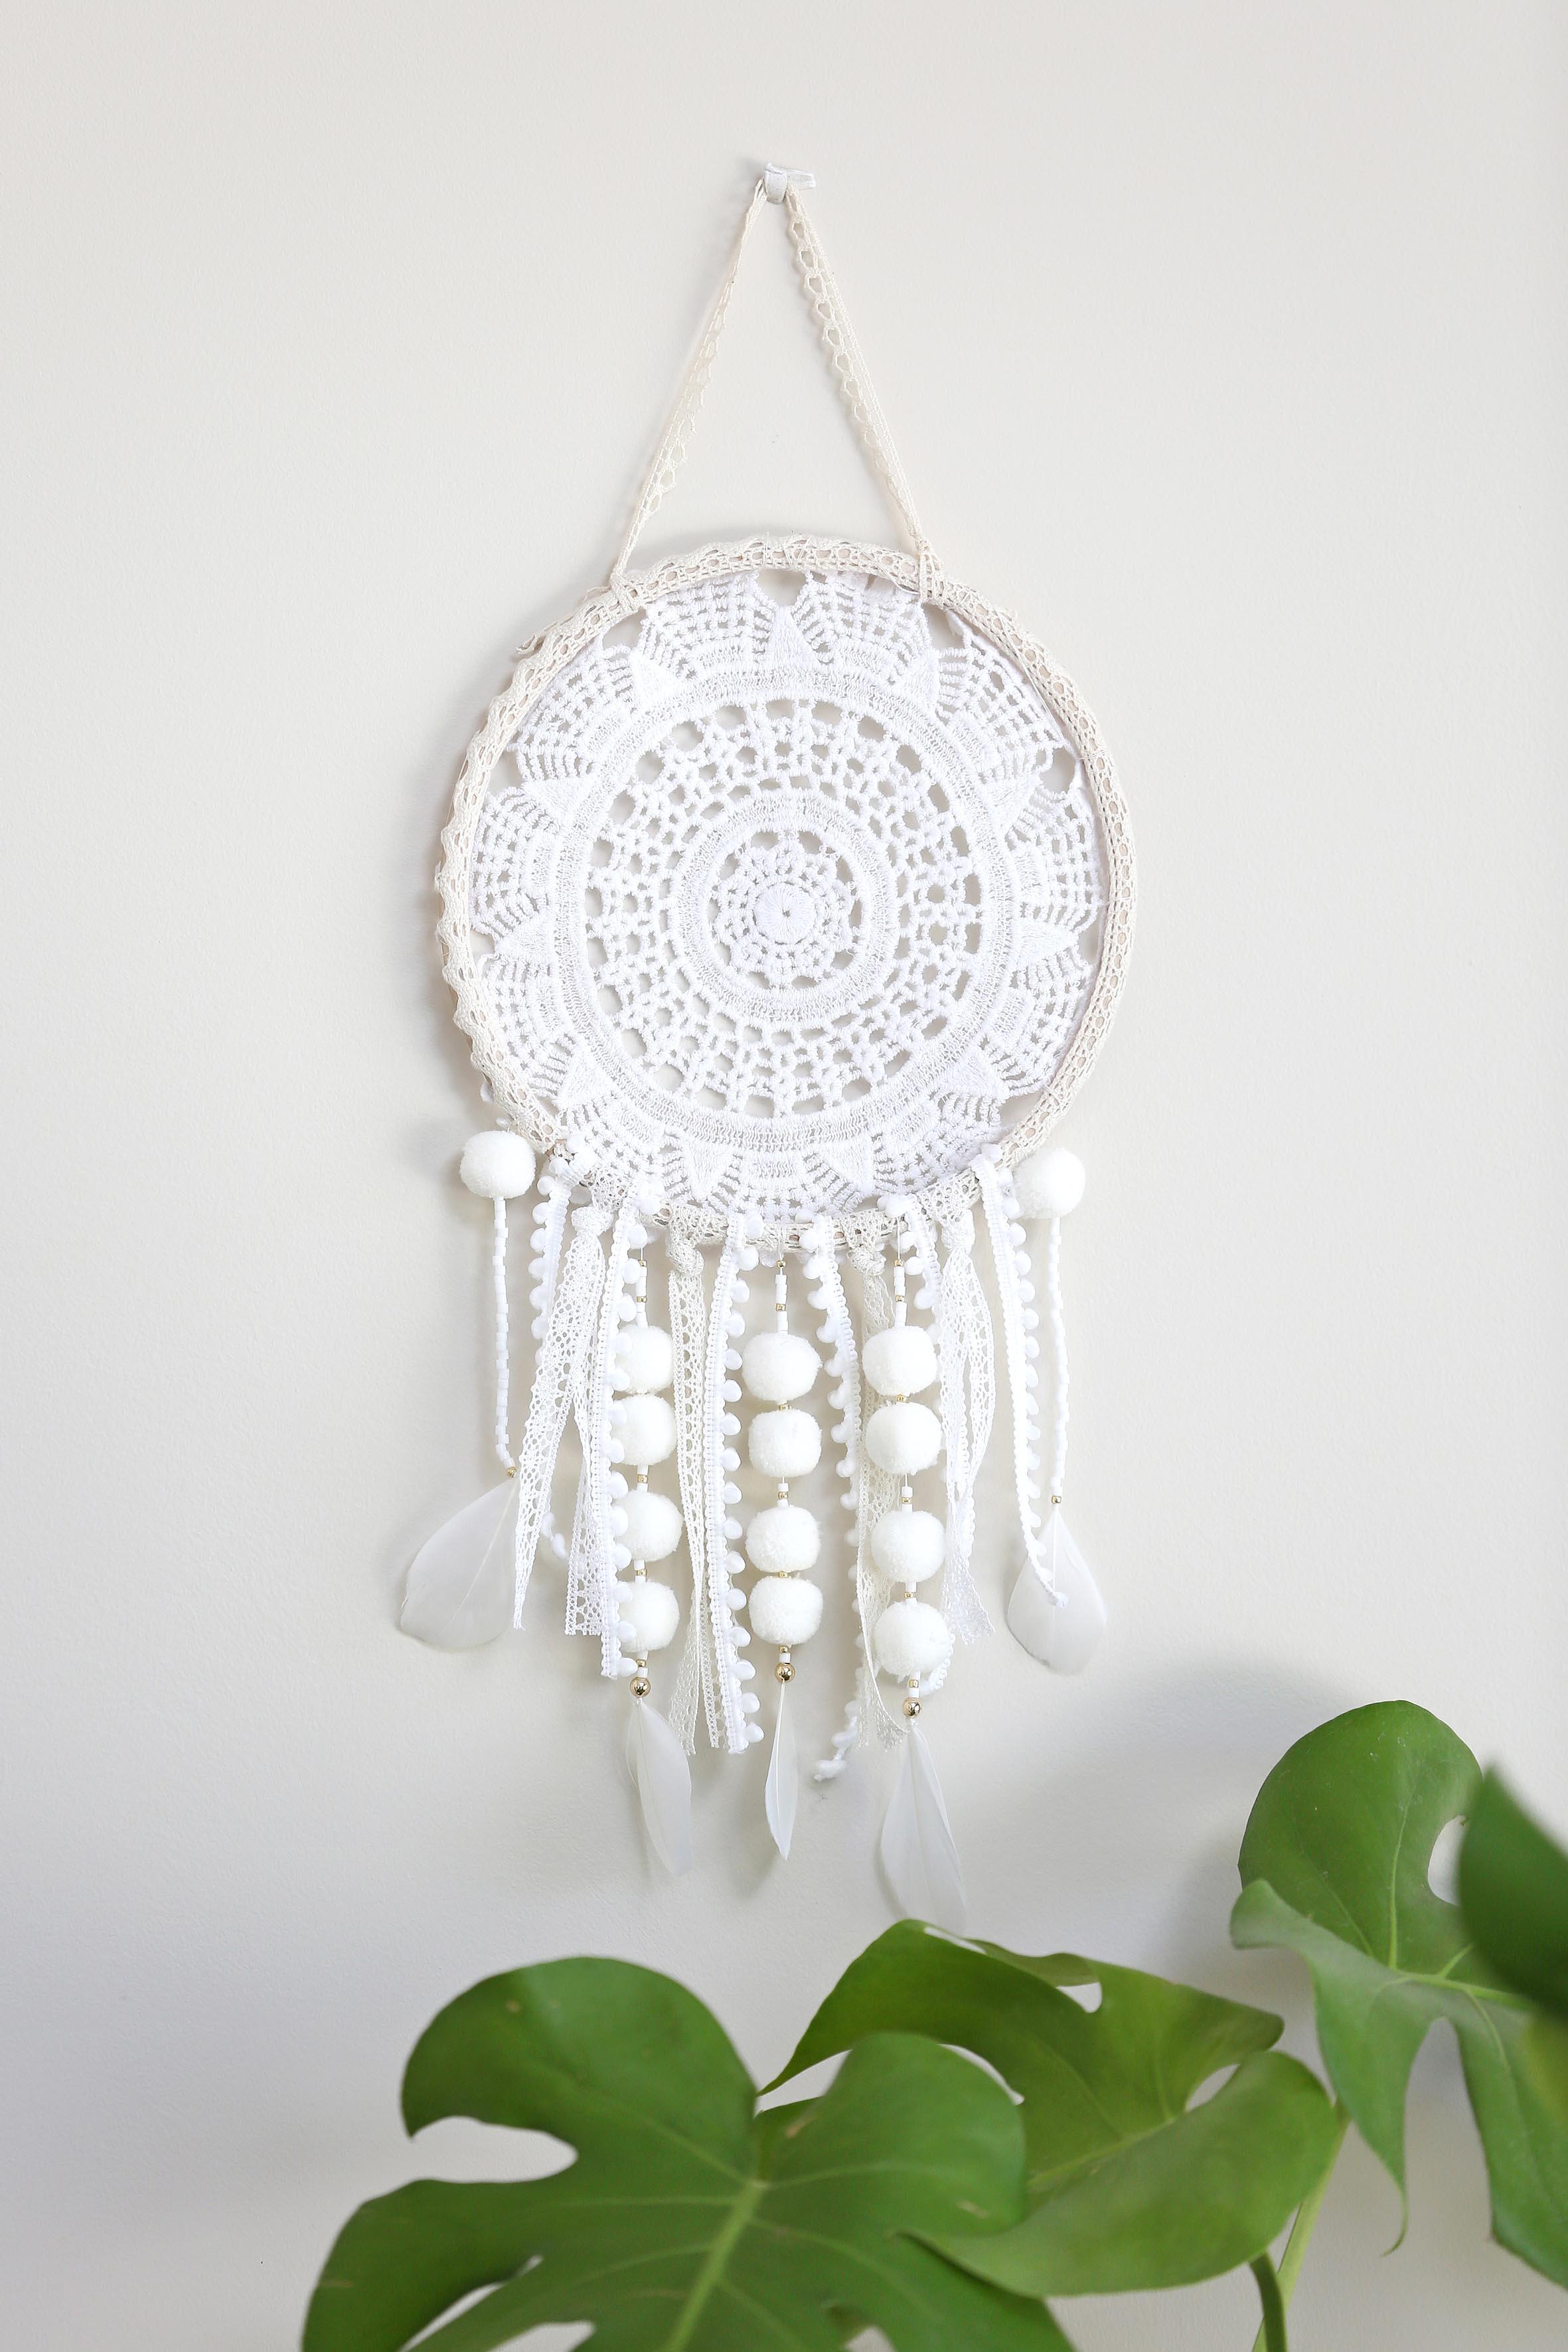 diy dreamcatcher fabriquer un attrape r ve diy simple avec un na perles co. Black Bedroom Furniture Sets. Home Design Ideas